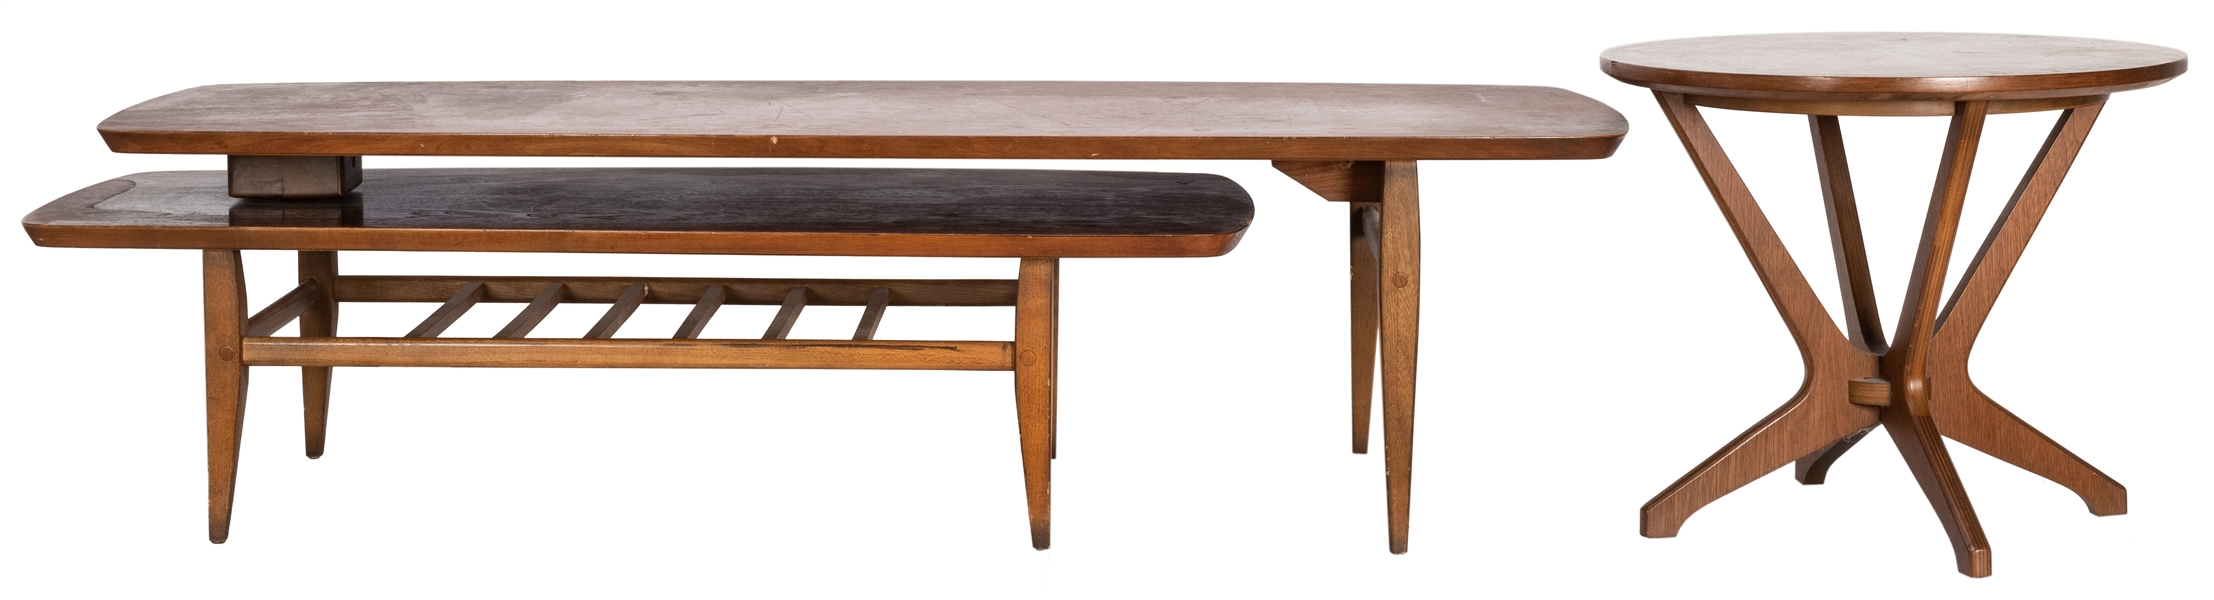 "Lane Mid-Century ""Switchblade"" Coffee Table and Drexler Sid..."